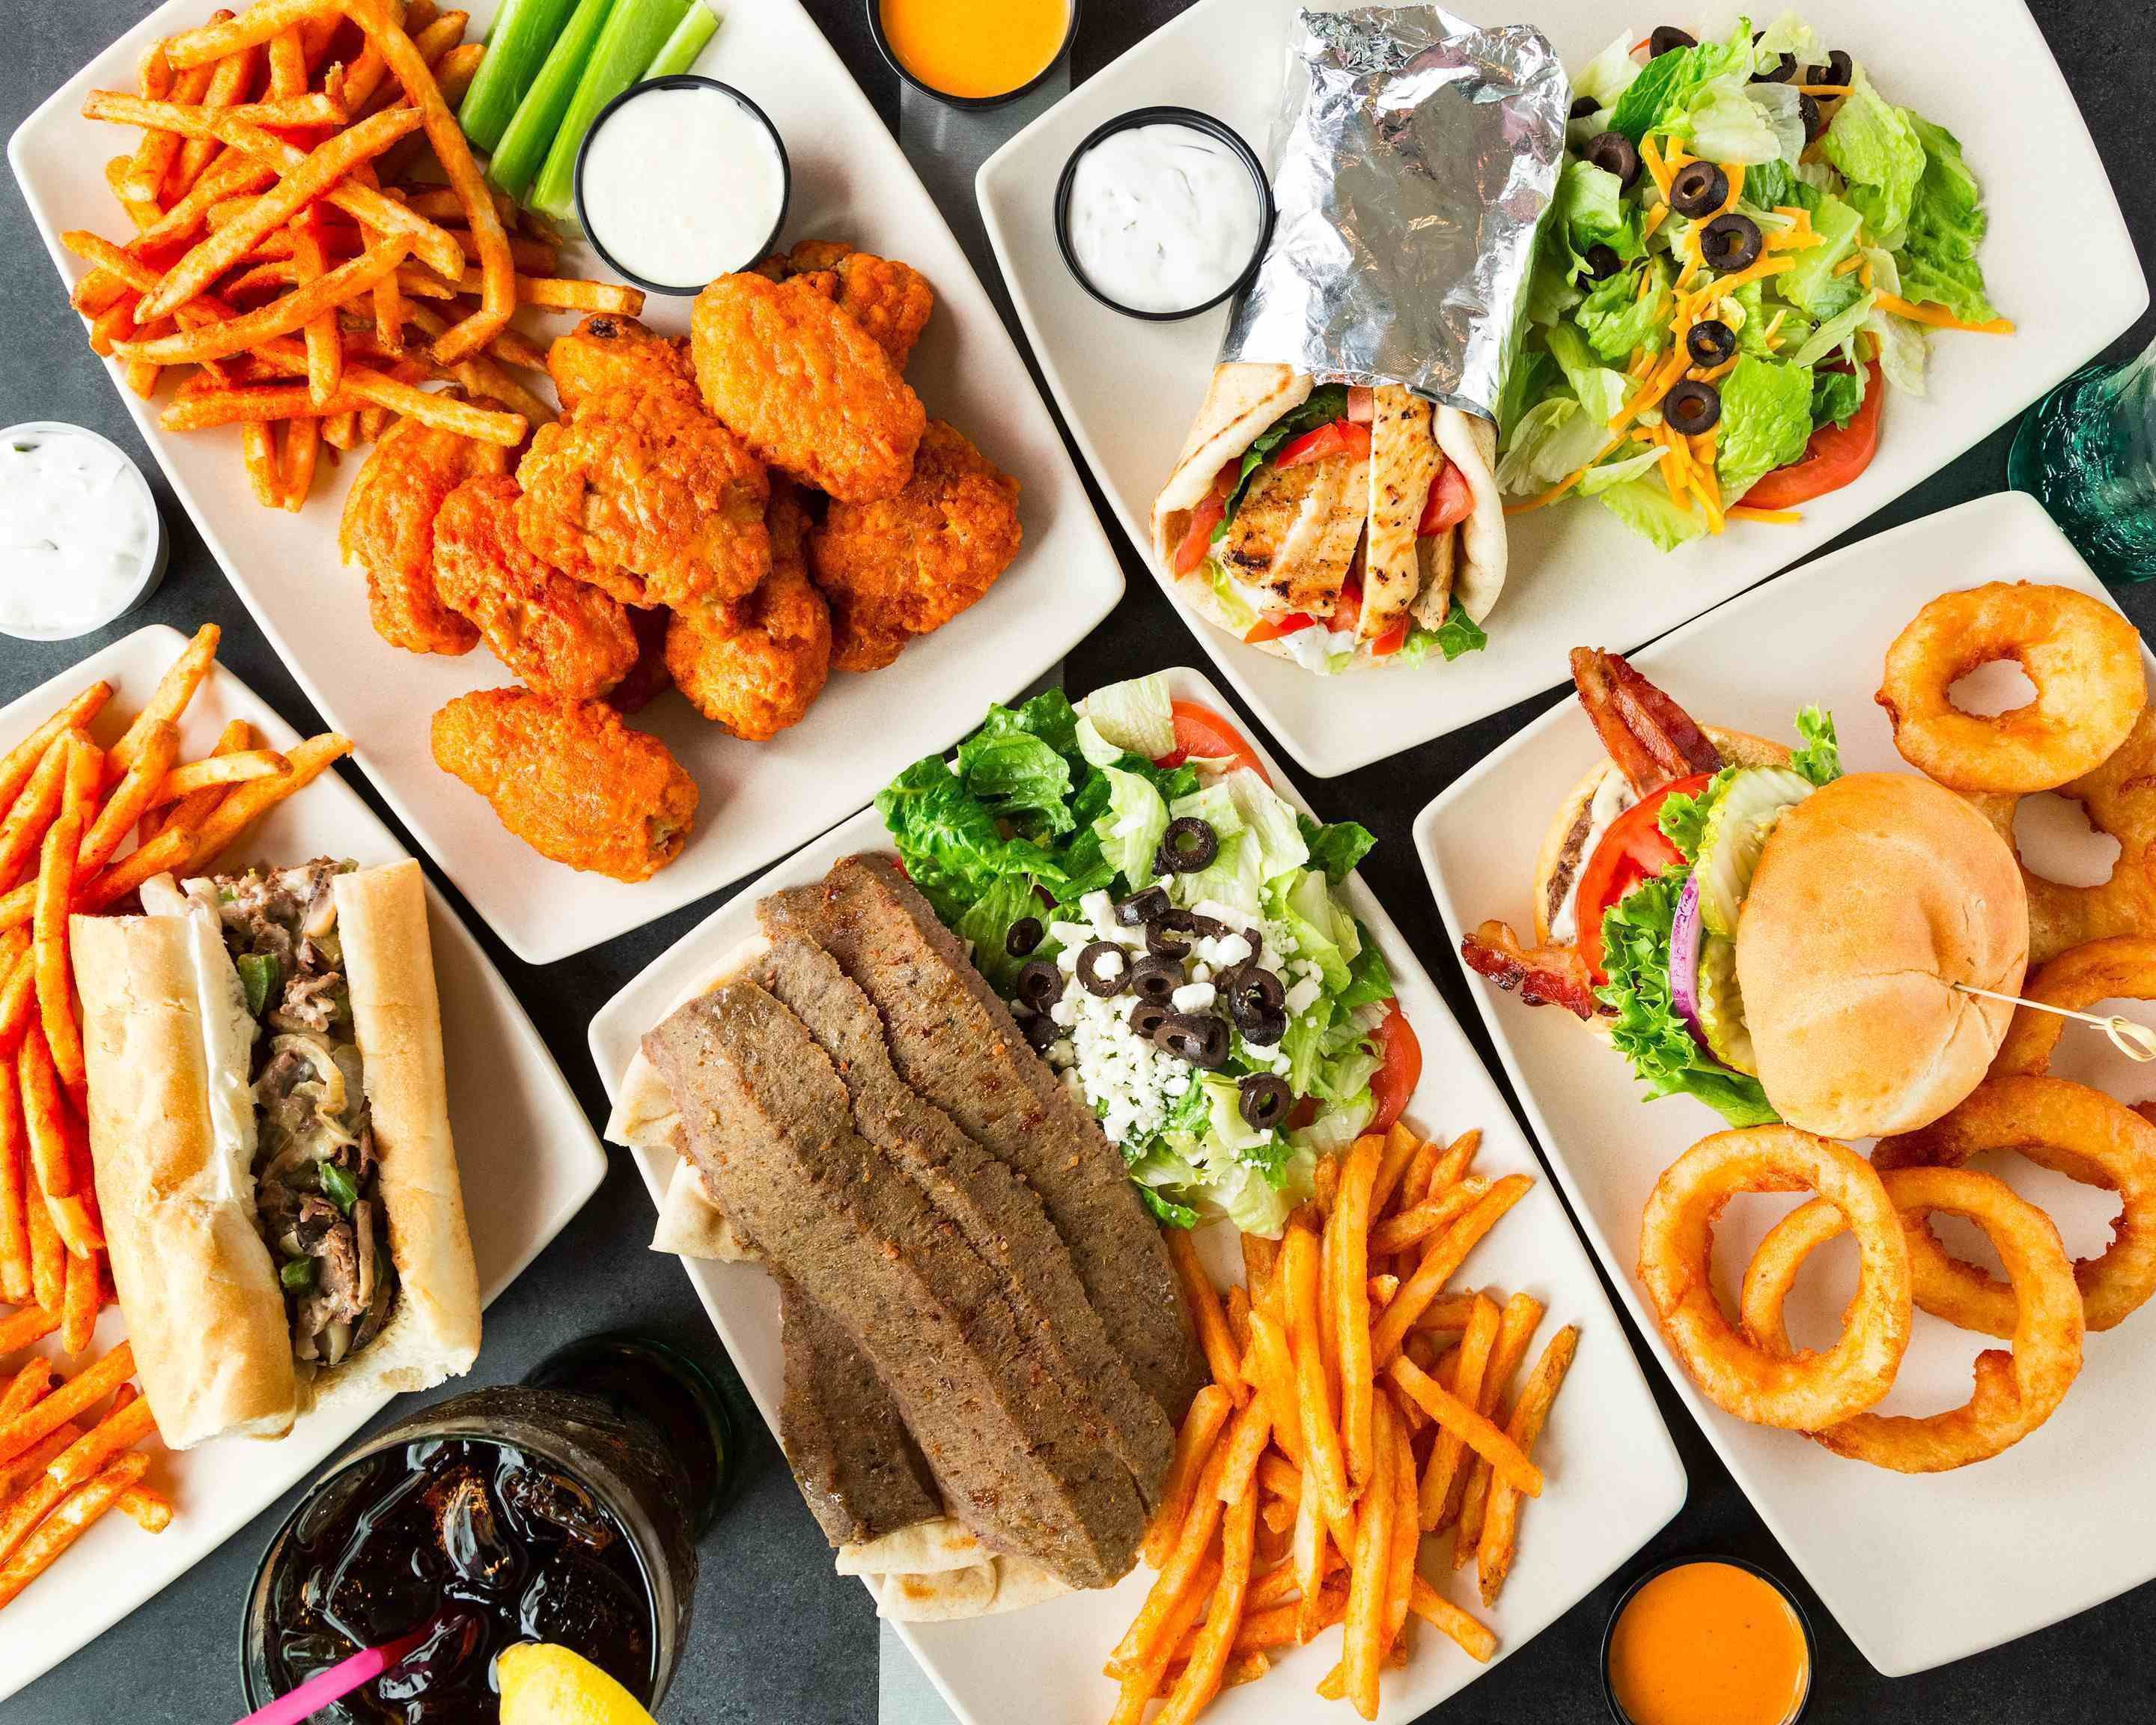 Order Miami Subs Hollywood Blvd Delivery Online Miami Menu Prices Uber Eats